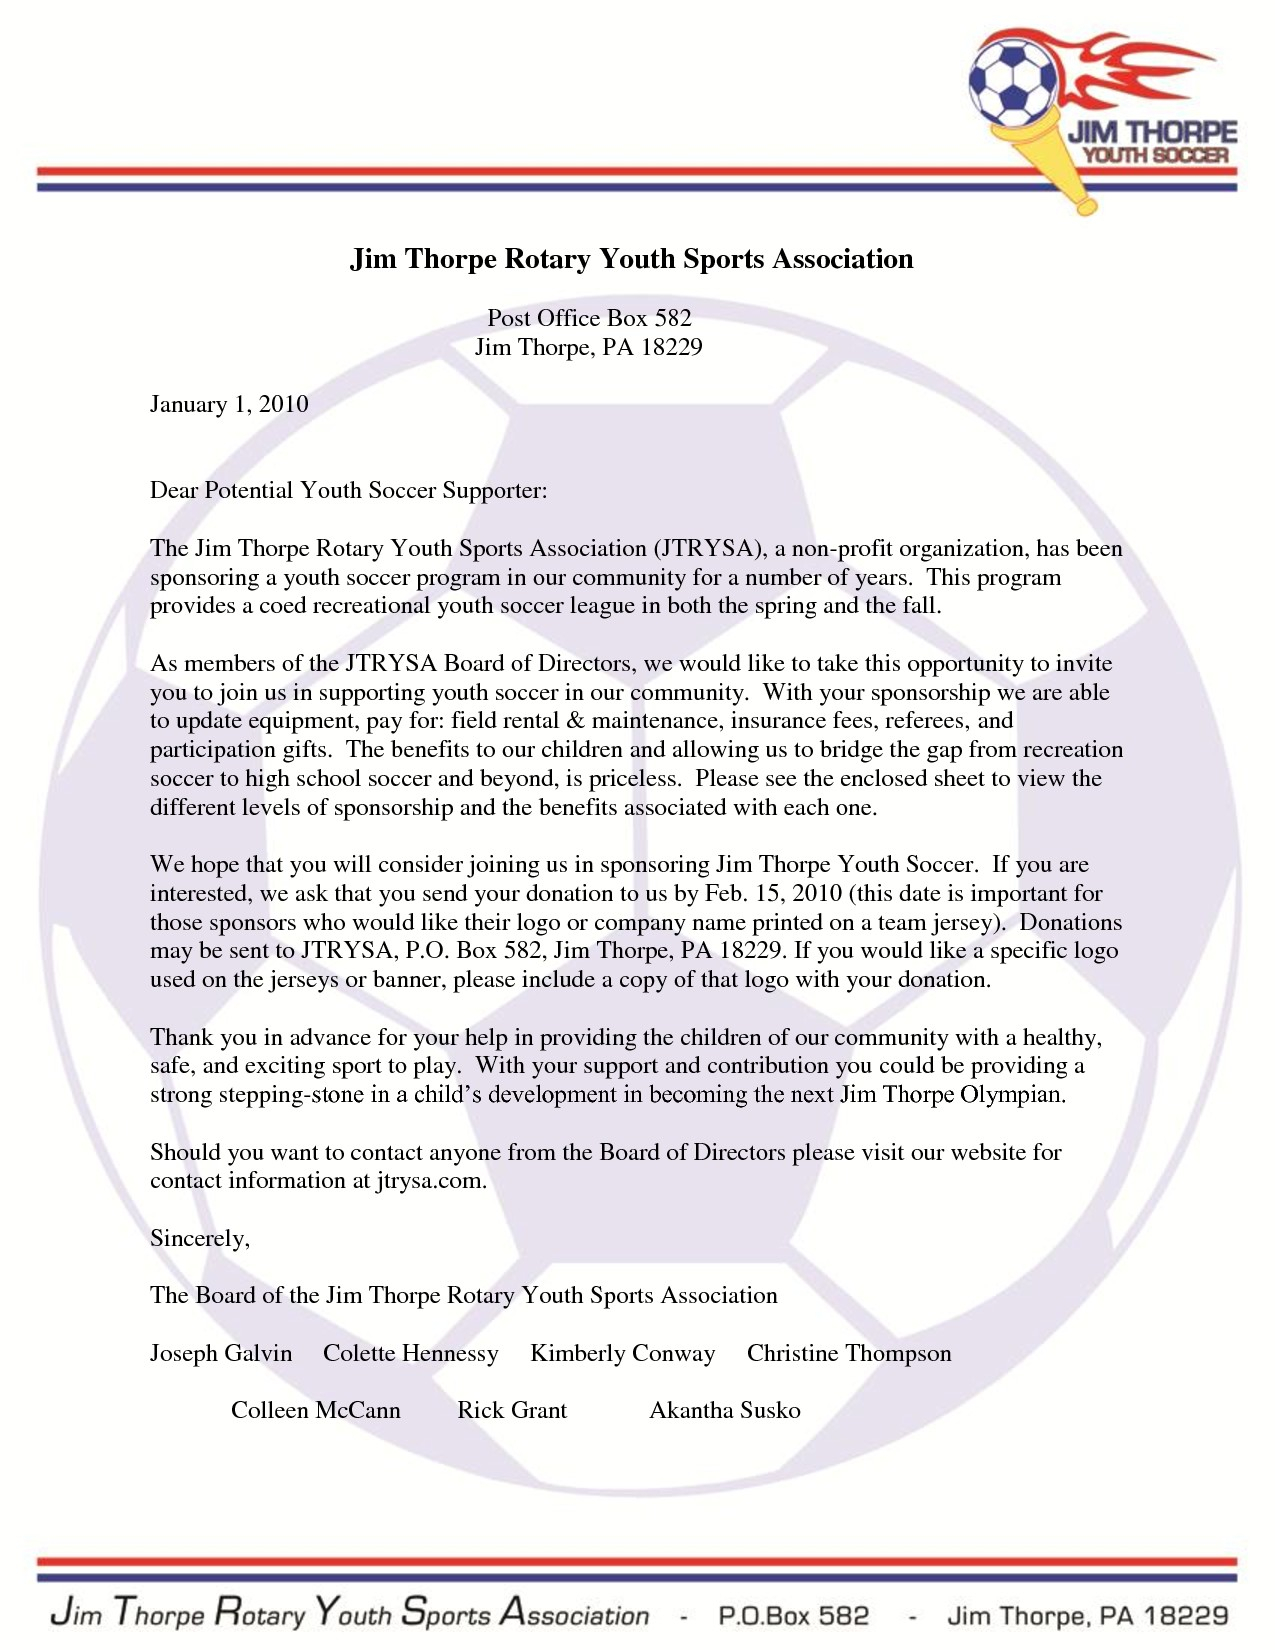 Youth Baseball Sponsorship Letter Template - Sponsorship Letter for Sports Valid How to Write A Sponsorship